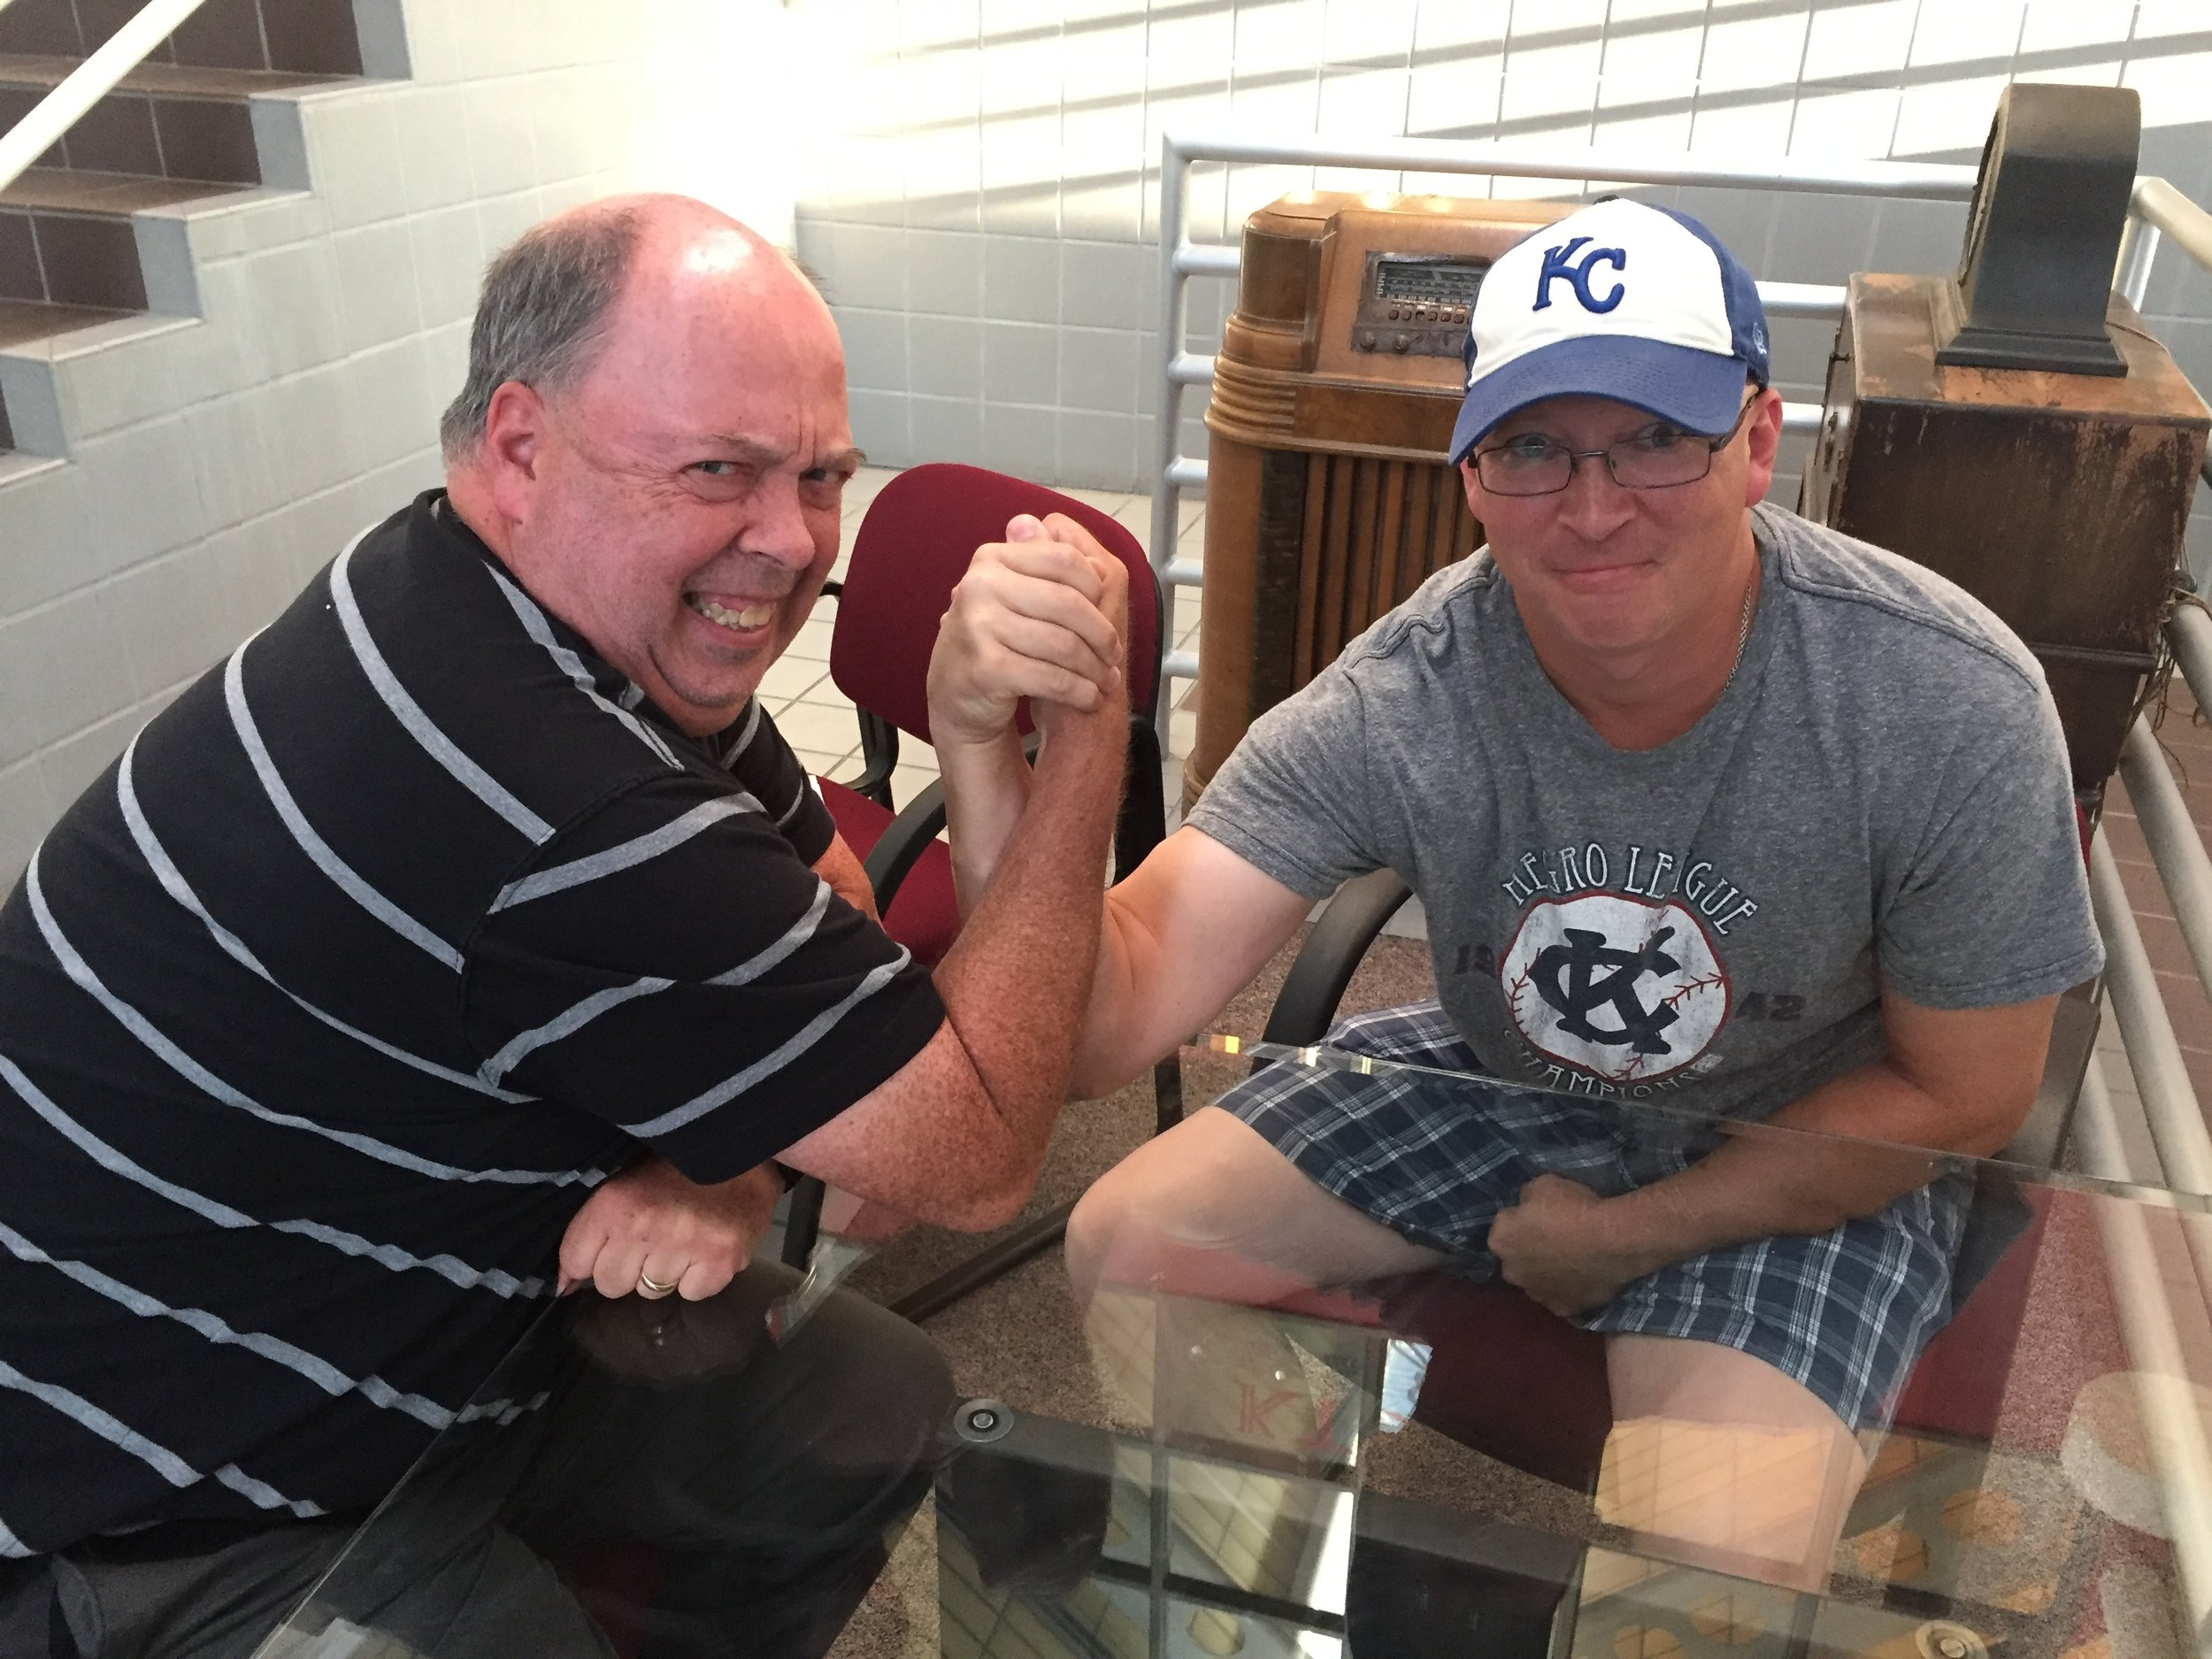 My Cardinals (Don Louzader) and Royals (Ethan Bryan) correspondents duke it out on the night the Cardinals and Royals play.